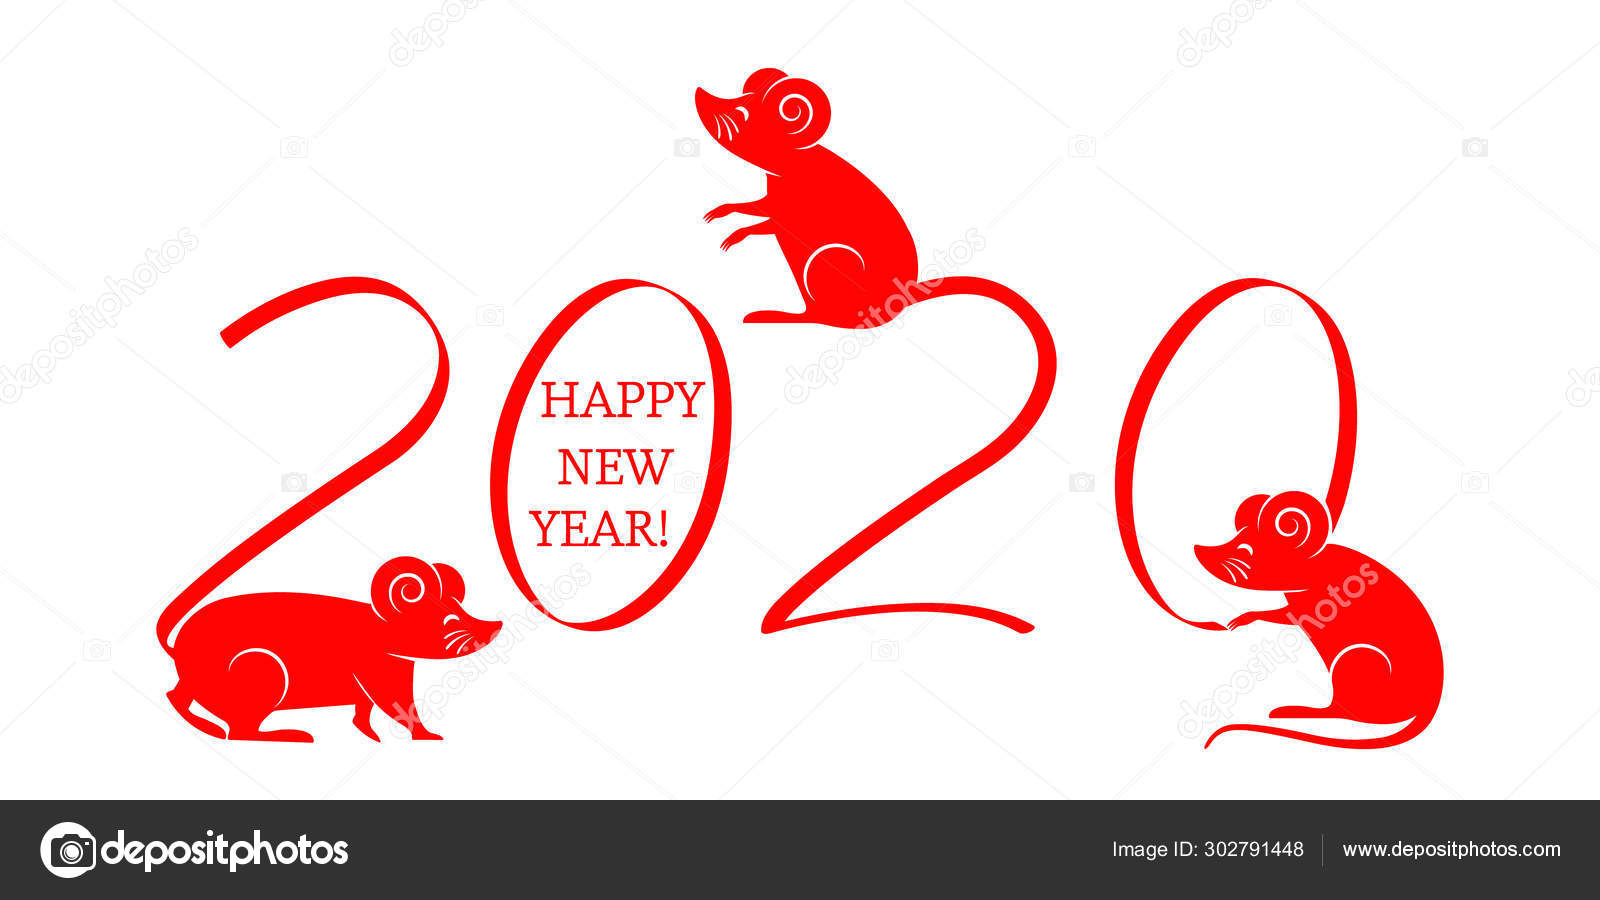 Eastern Christmas 2020 Greeting Christmas card with the year 2020 of the rat according to